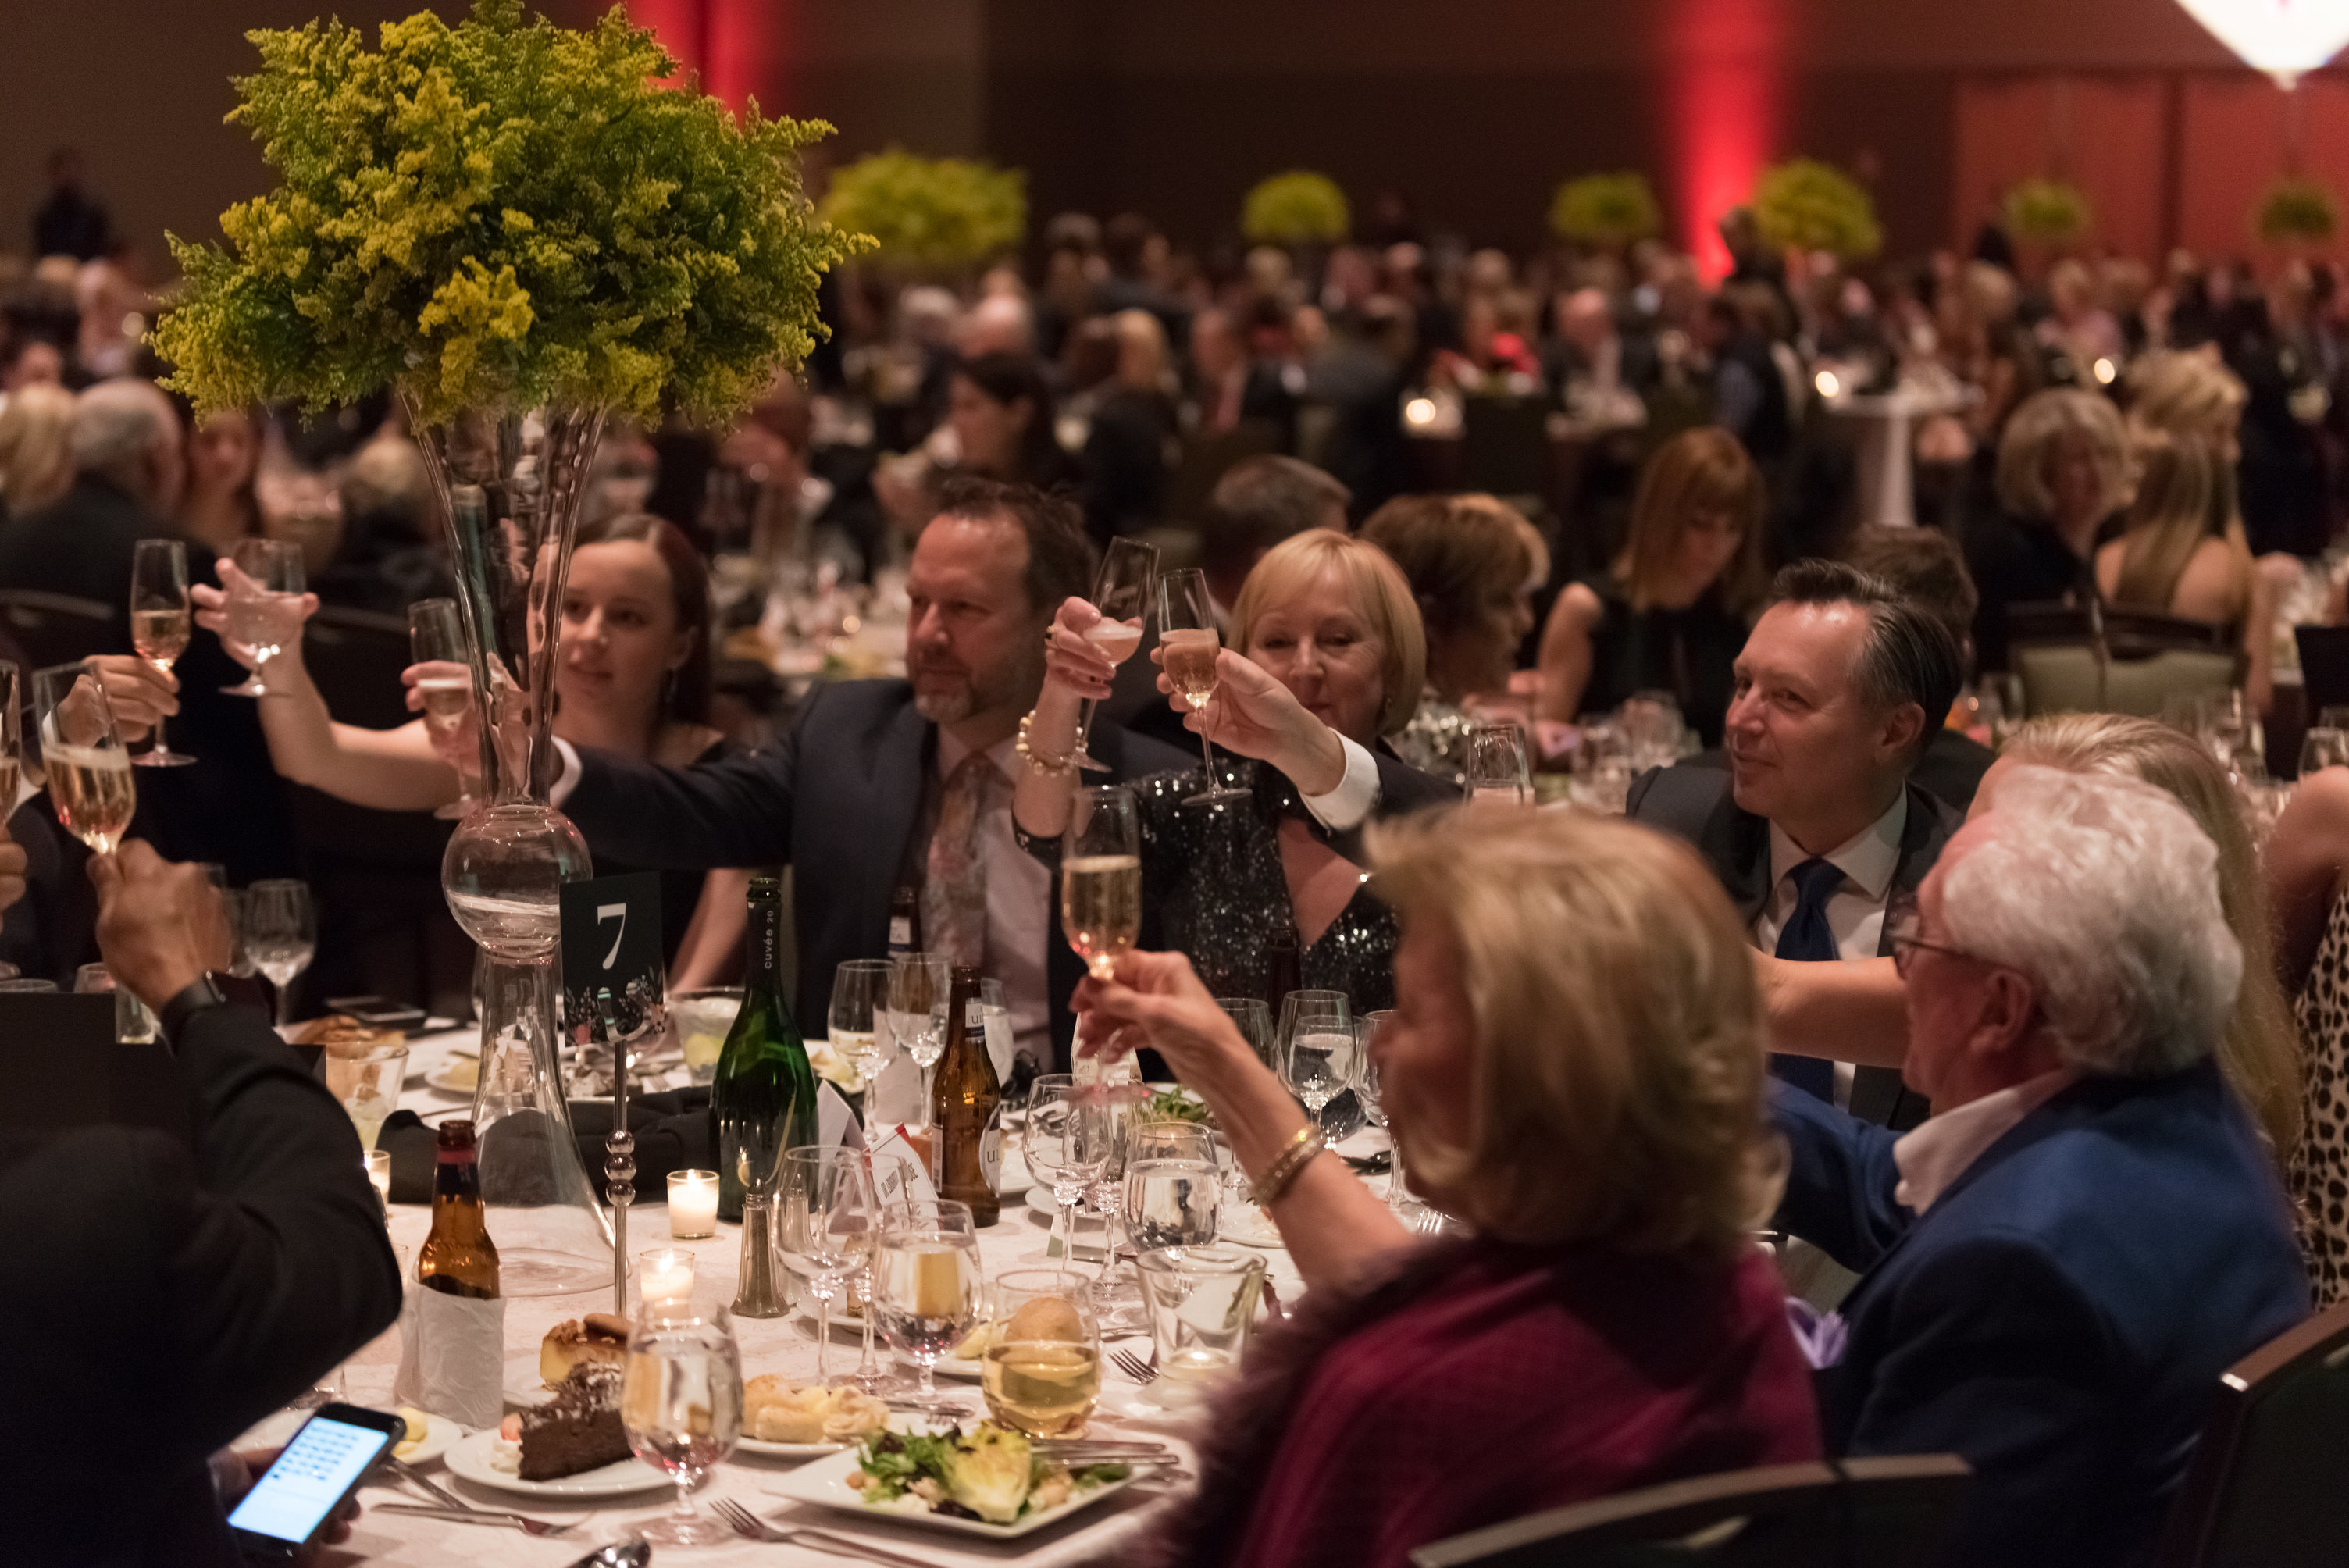 Heart Ball guests toasting